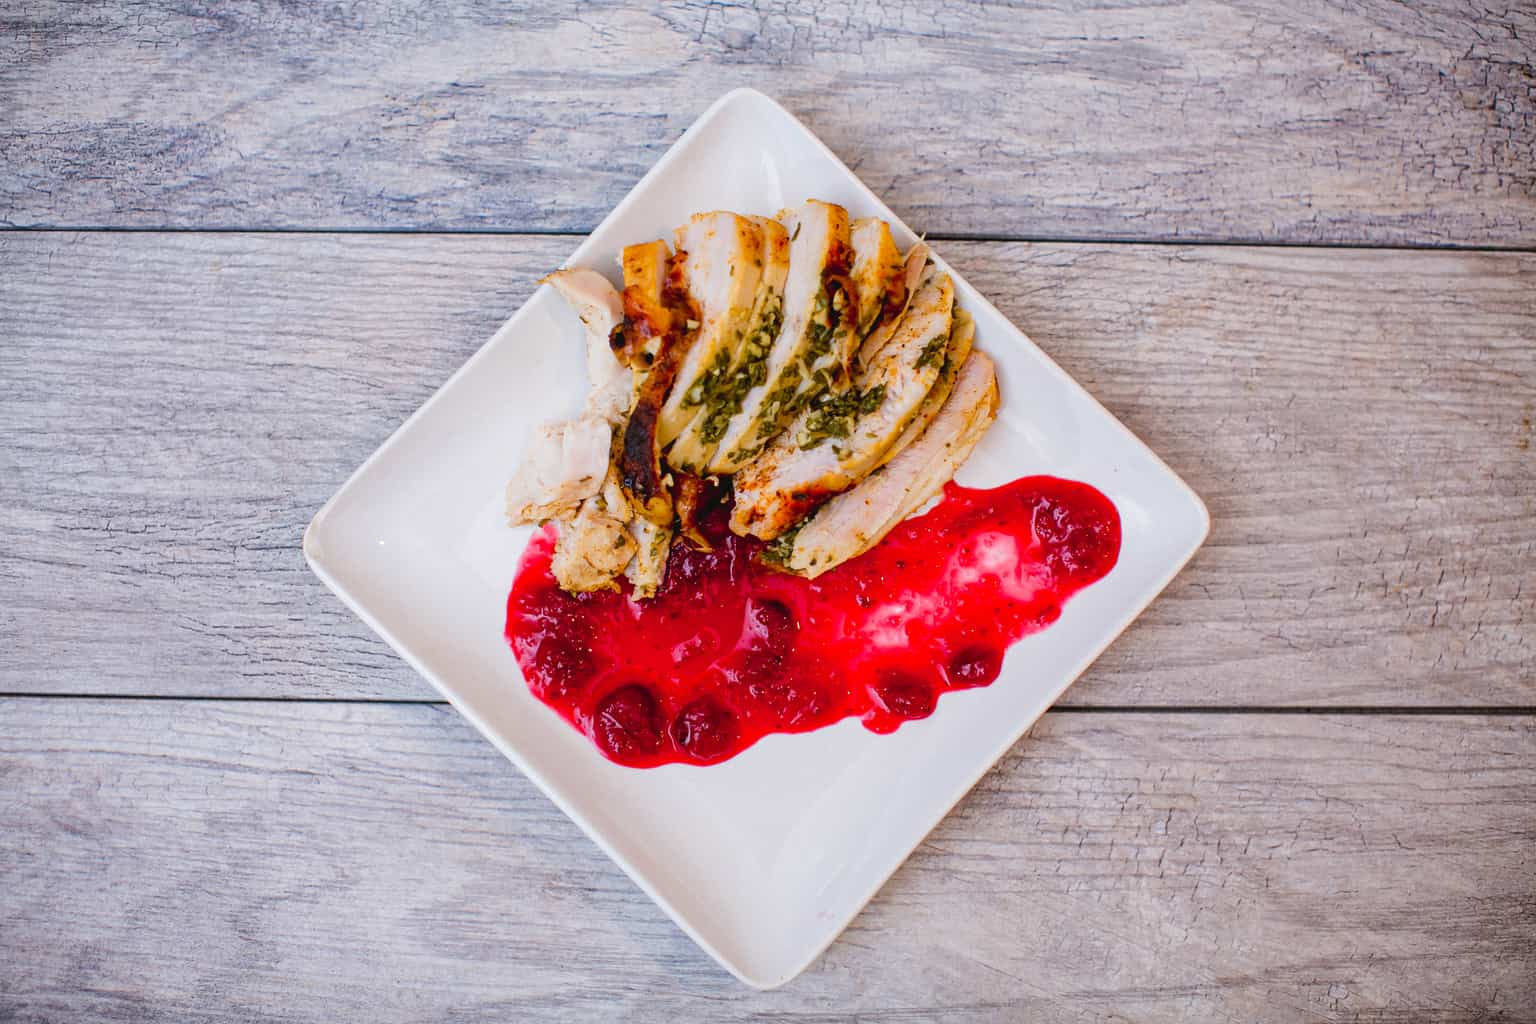 A plate of oven roasted turkey breast paired with cranberry sauce